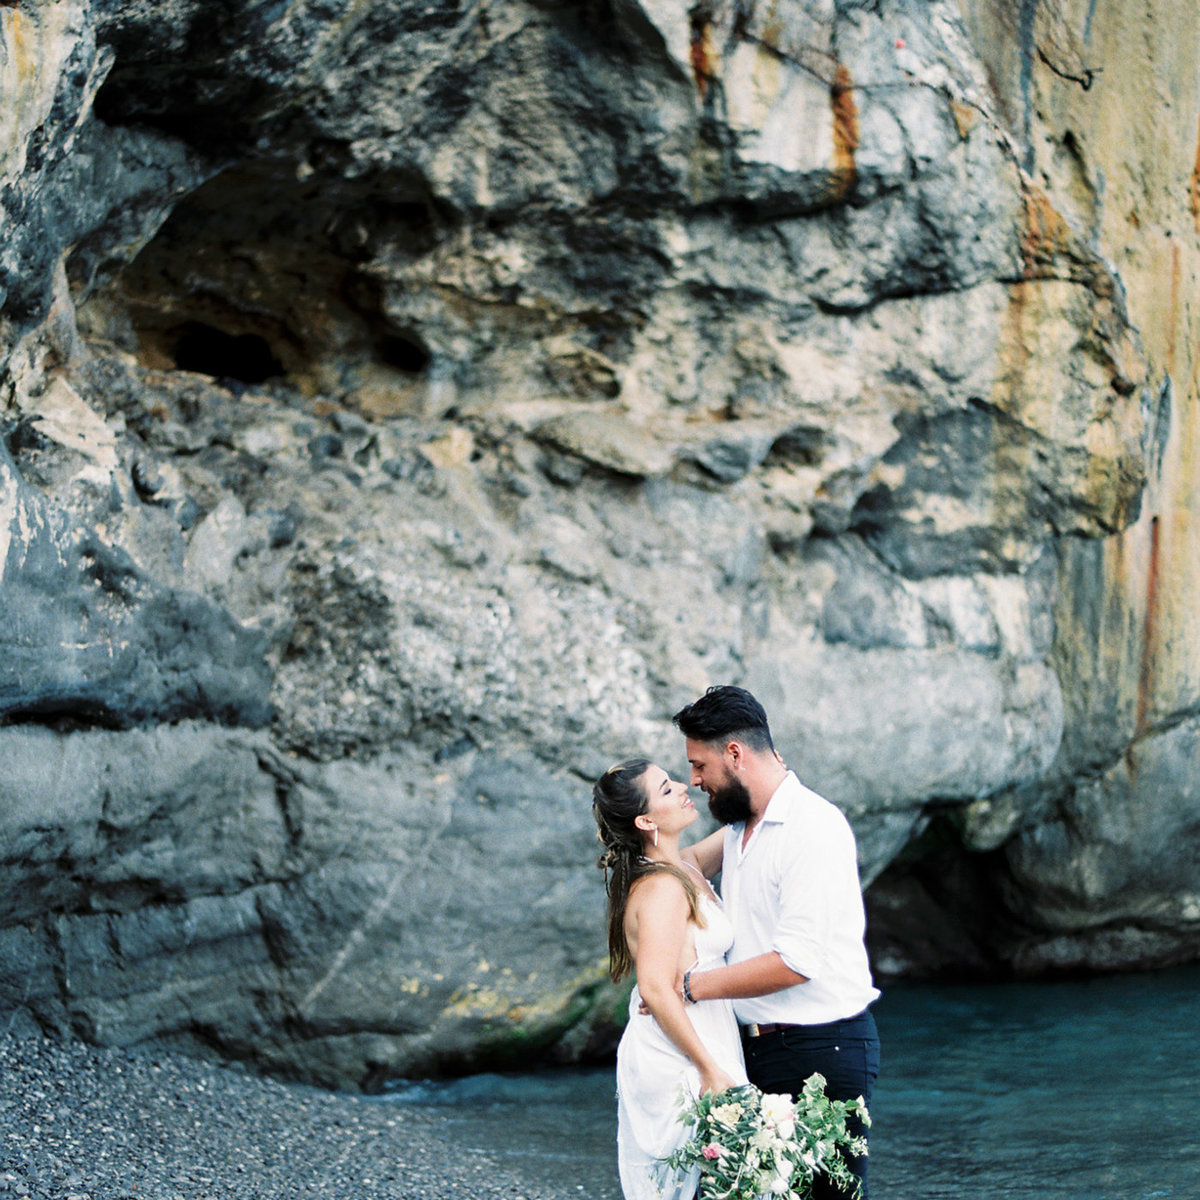 positano_italy_elopement_melanie_gabrielle_photography_099